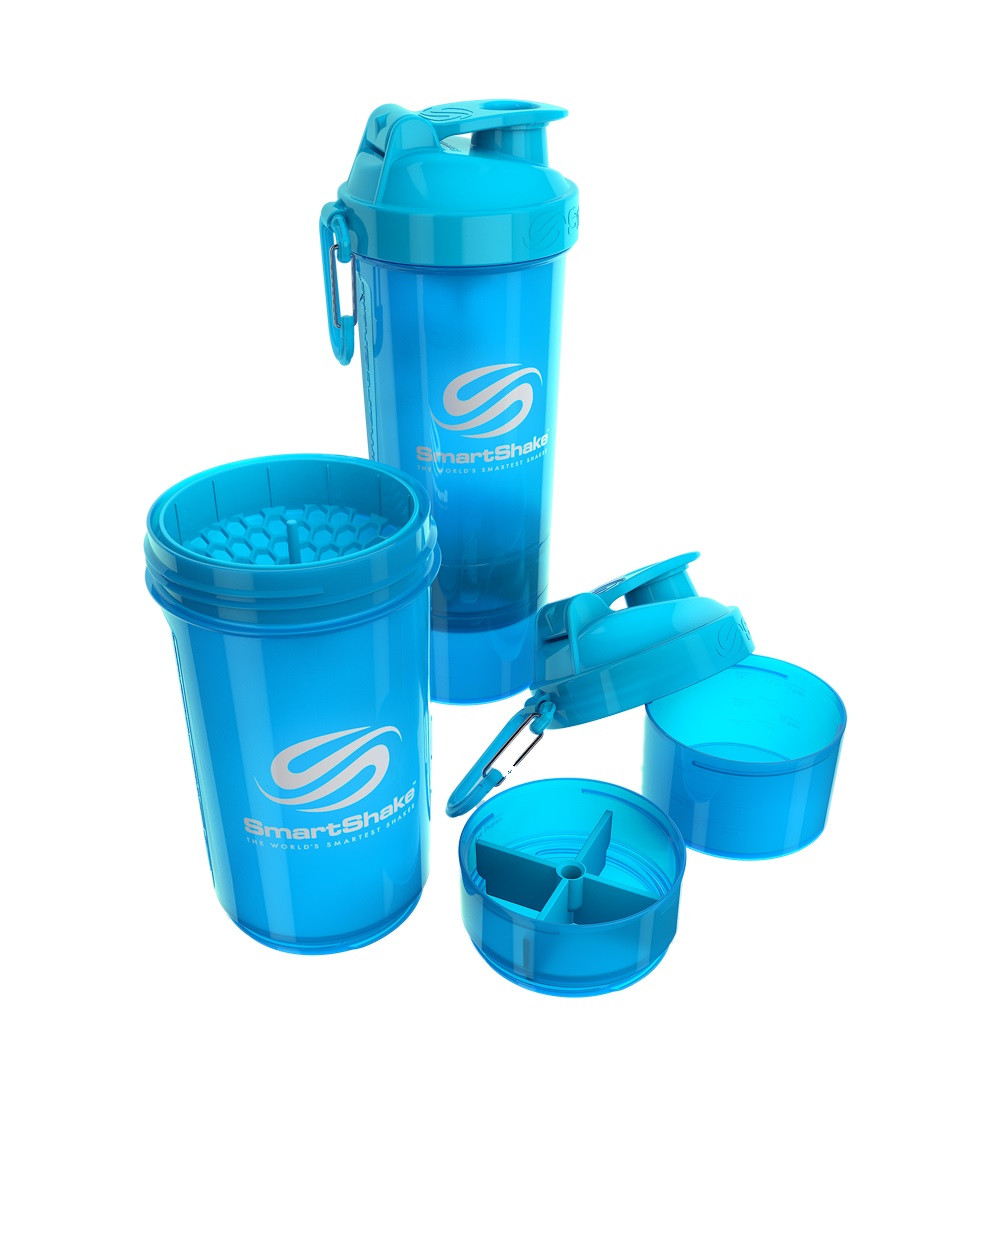 http://d3d71ba2asa5oz.cloudfront.net/23000296/images/smartshake-original2go-600ml-neonblue.jpg